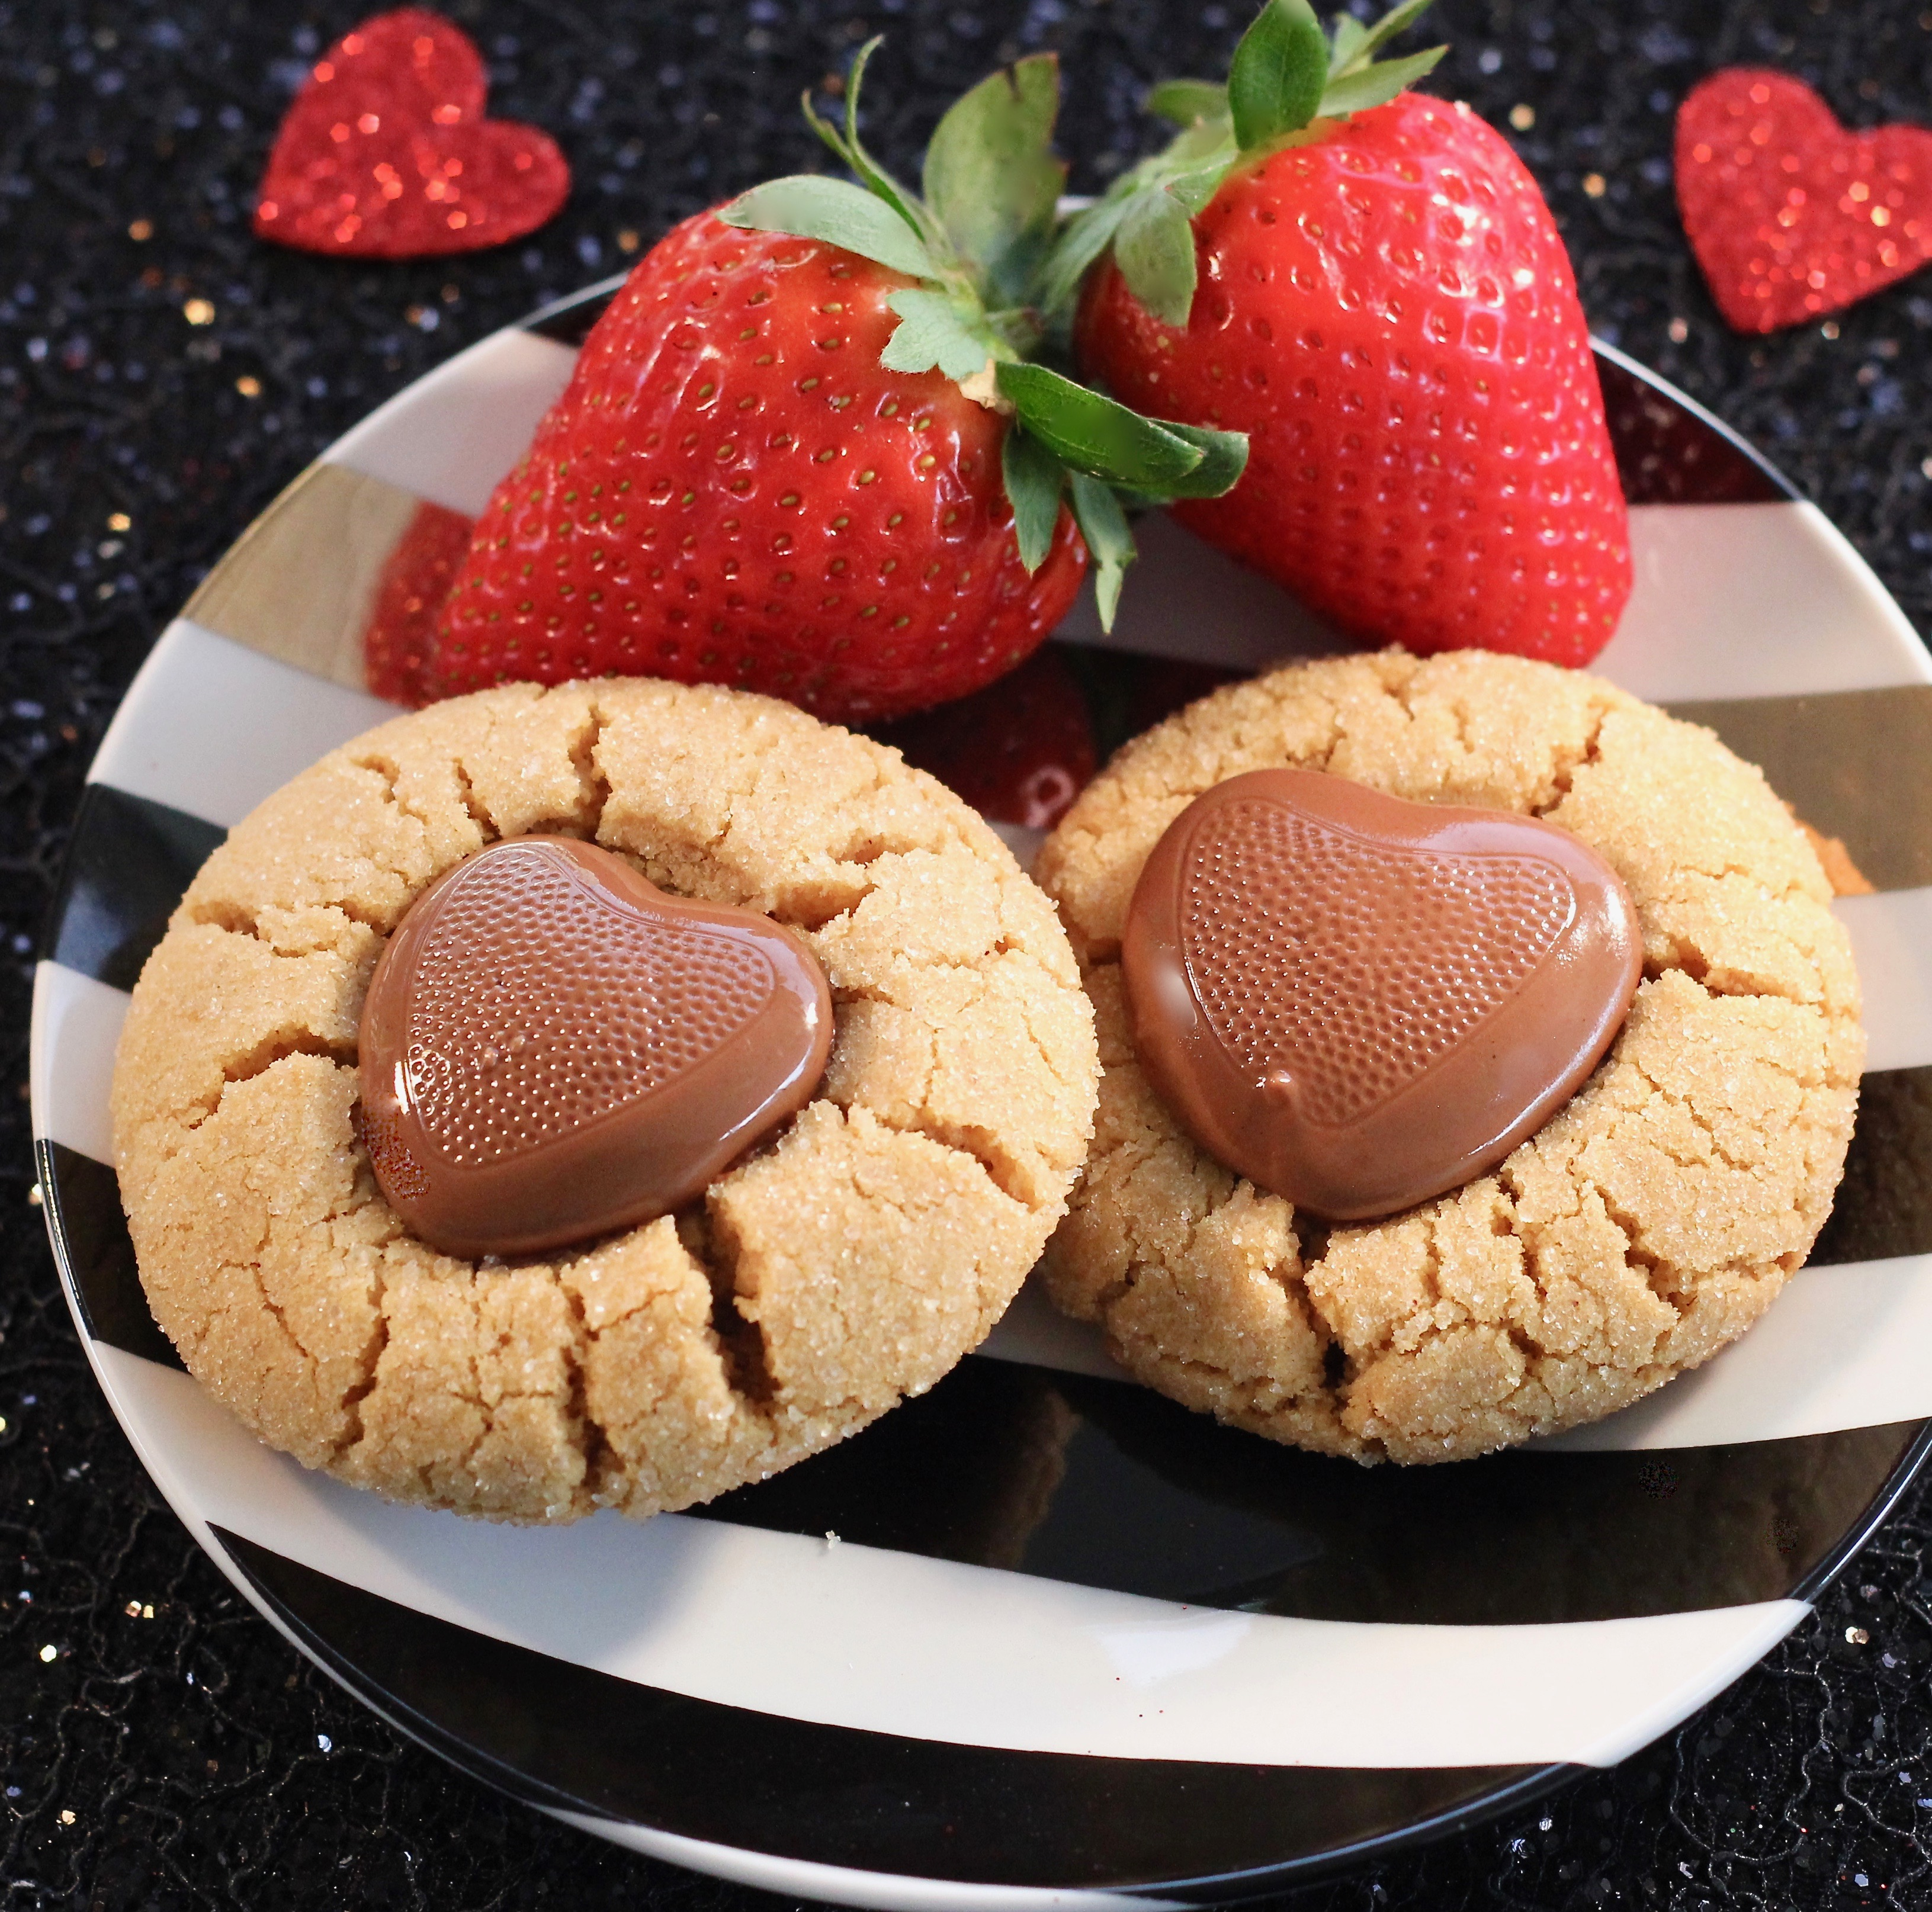 Mary's Peanut Butter Blossoms